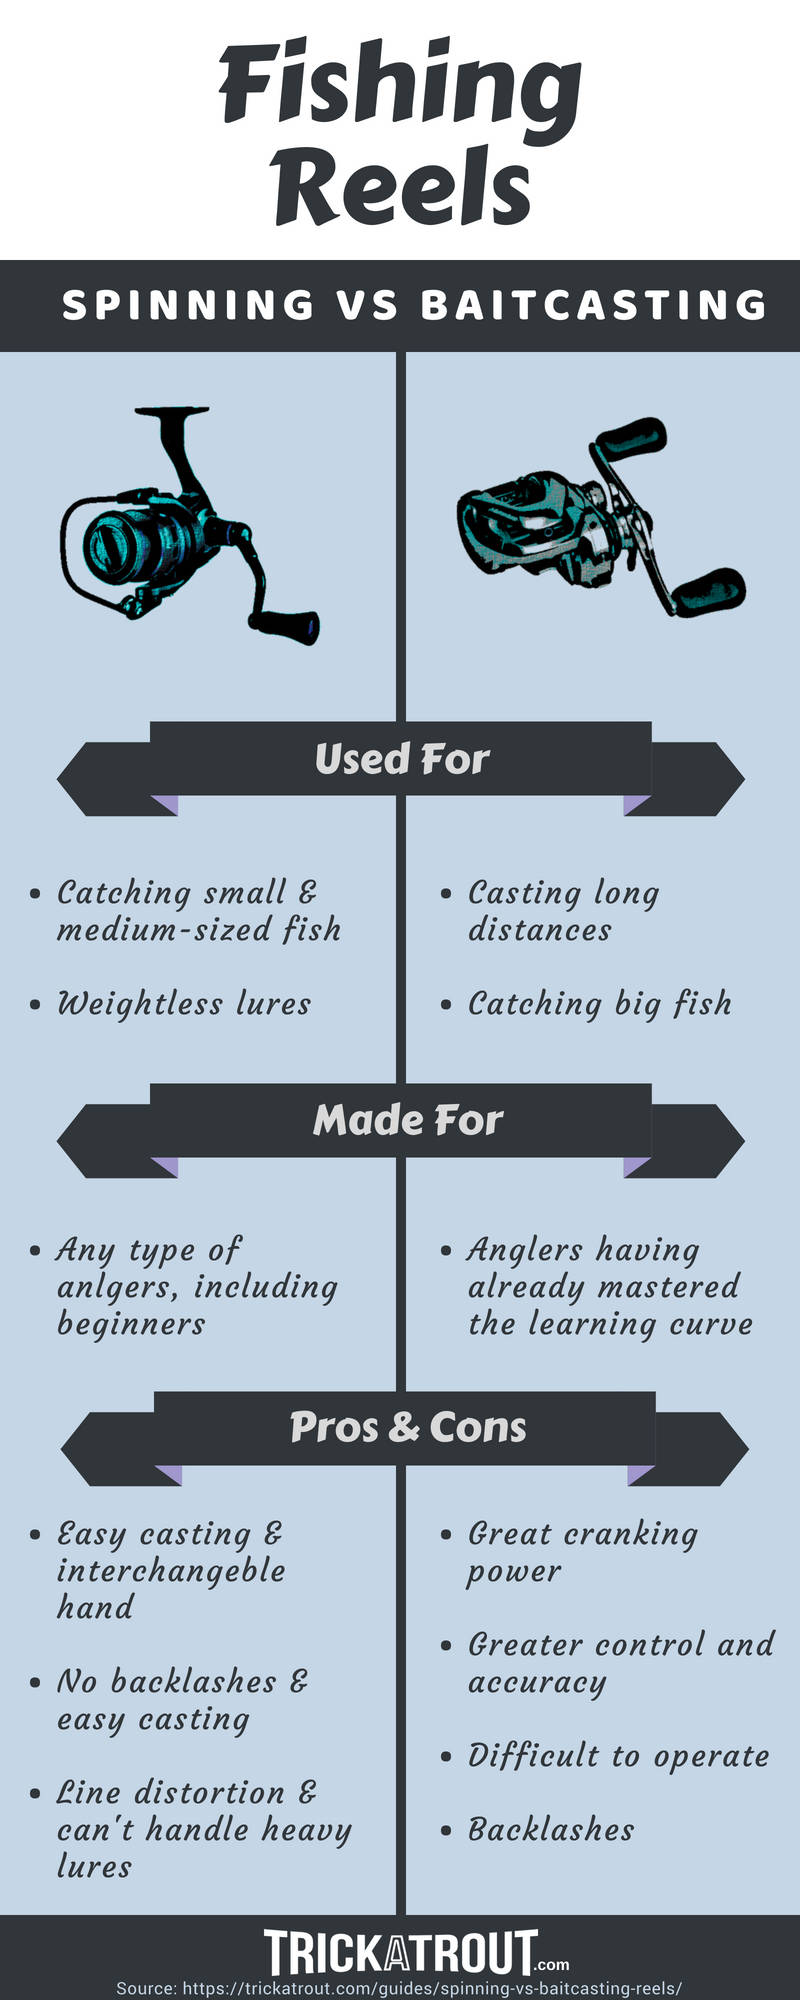 Fishing Reels - Spinning vs Baitcasting Infographic